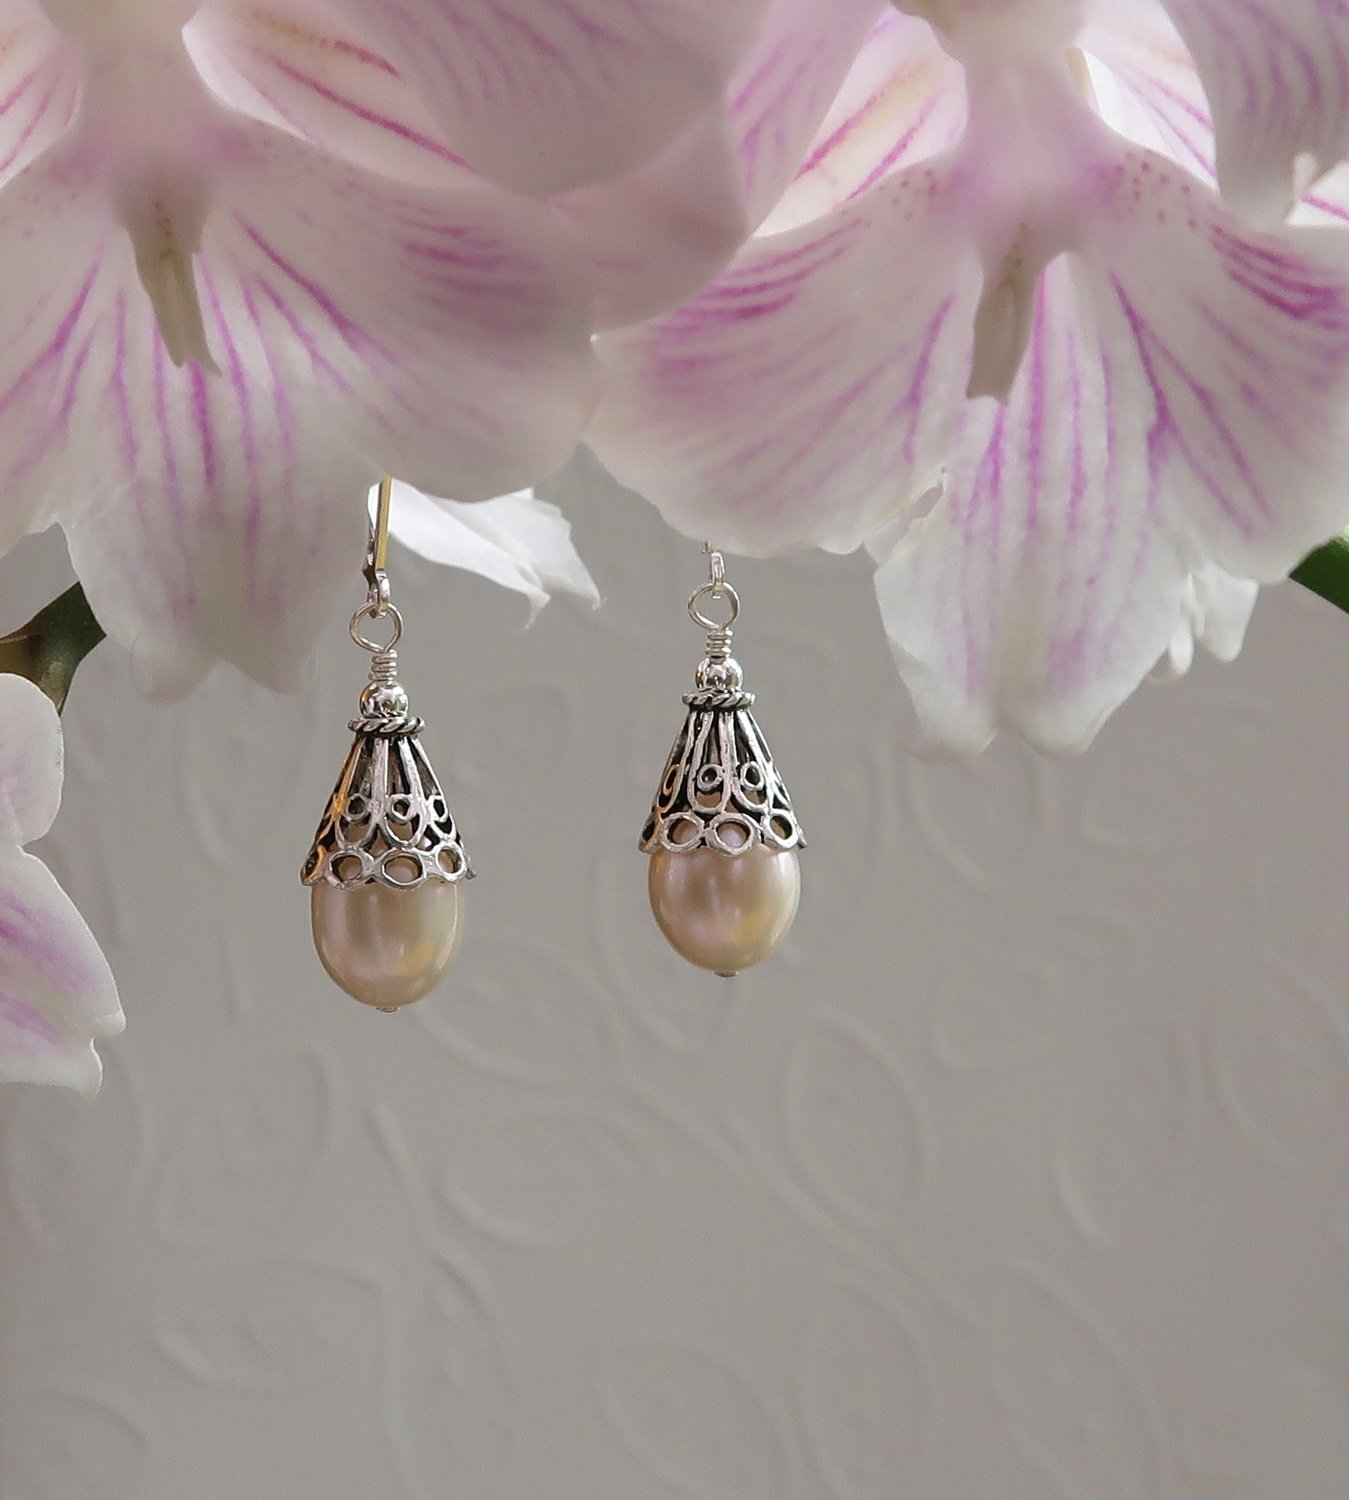 Tear Drop Cultured Pearls